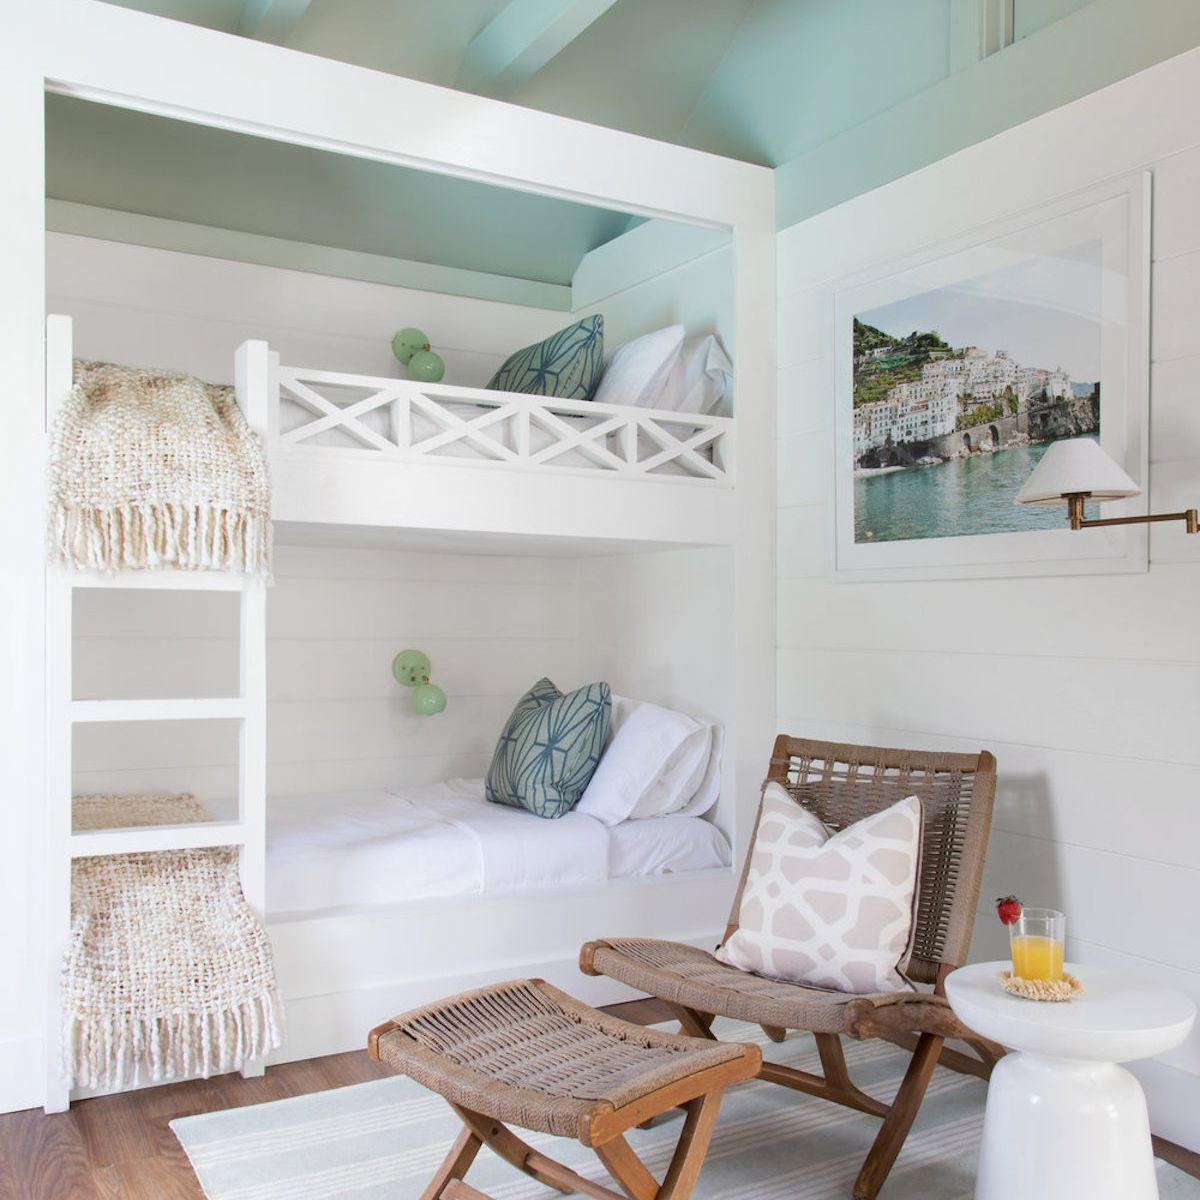 bedroom with bunk beds, teal ceiling with exposed wood beams, white walls, brown and wicker chair with foot stool